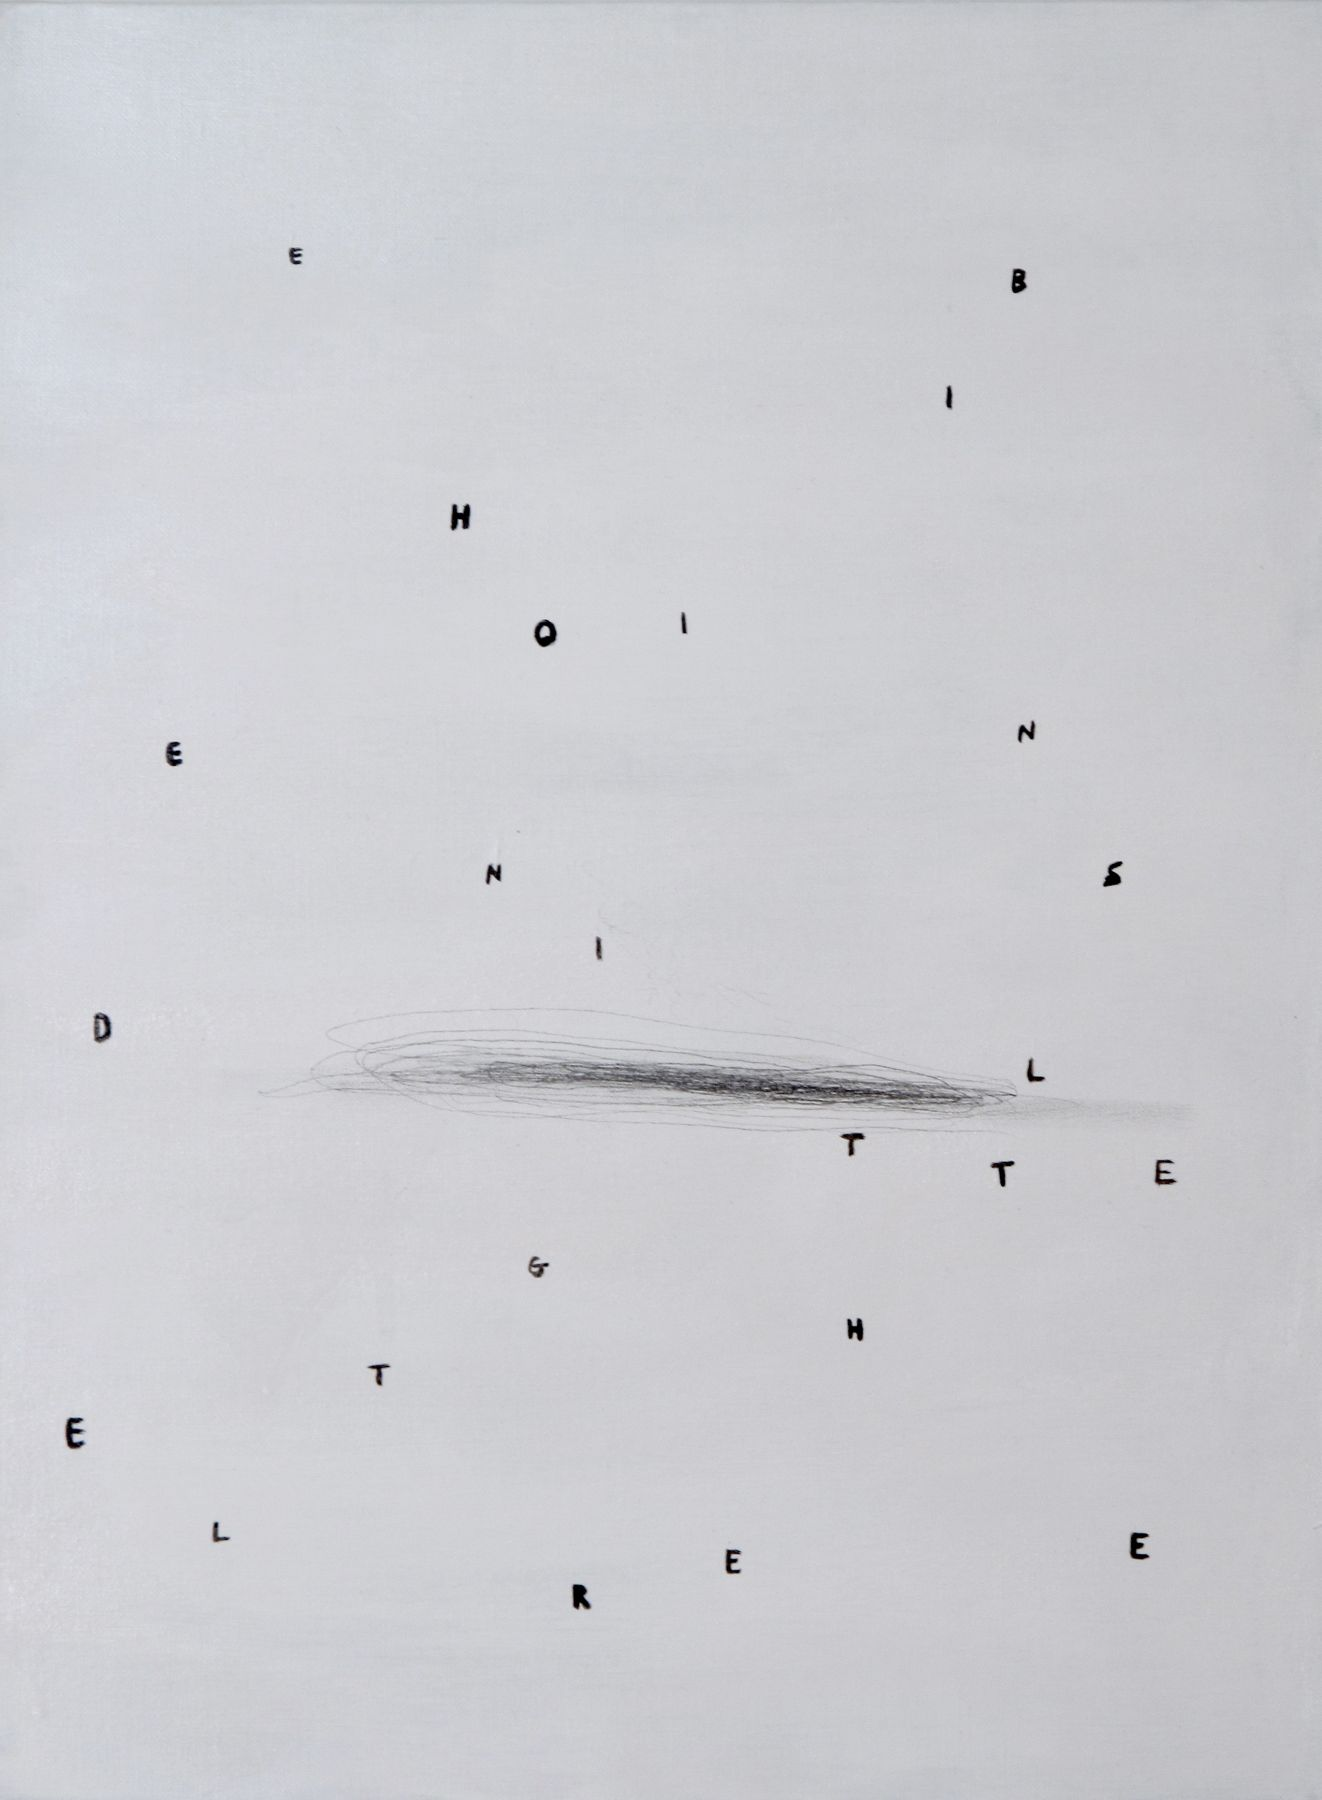 Josef Strau The Assistant (5), 2008 ink letters, pencil and acrylic on canvas 24 x 18 inches  60.96 x 45.72 cm